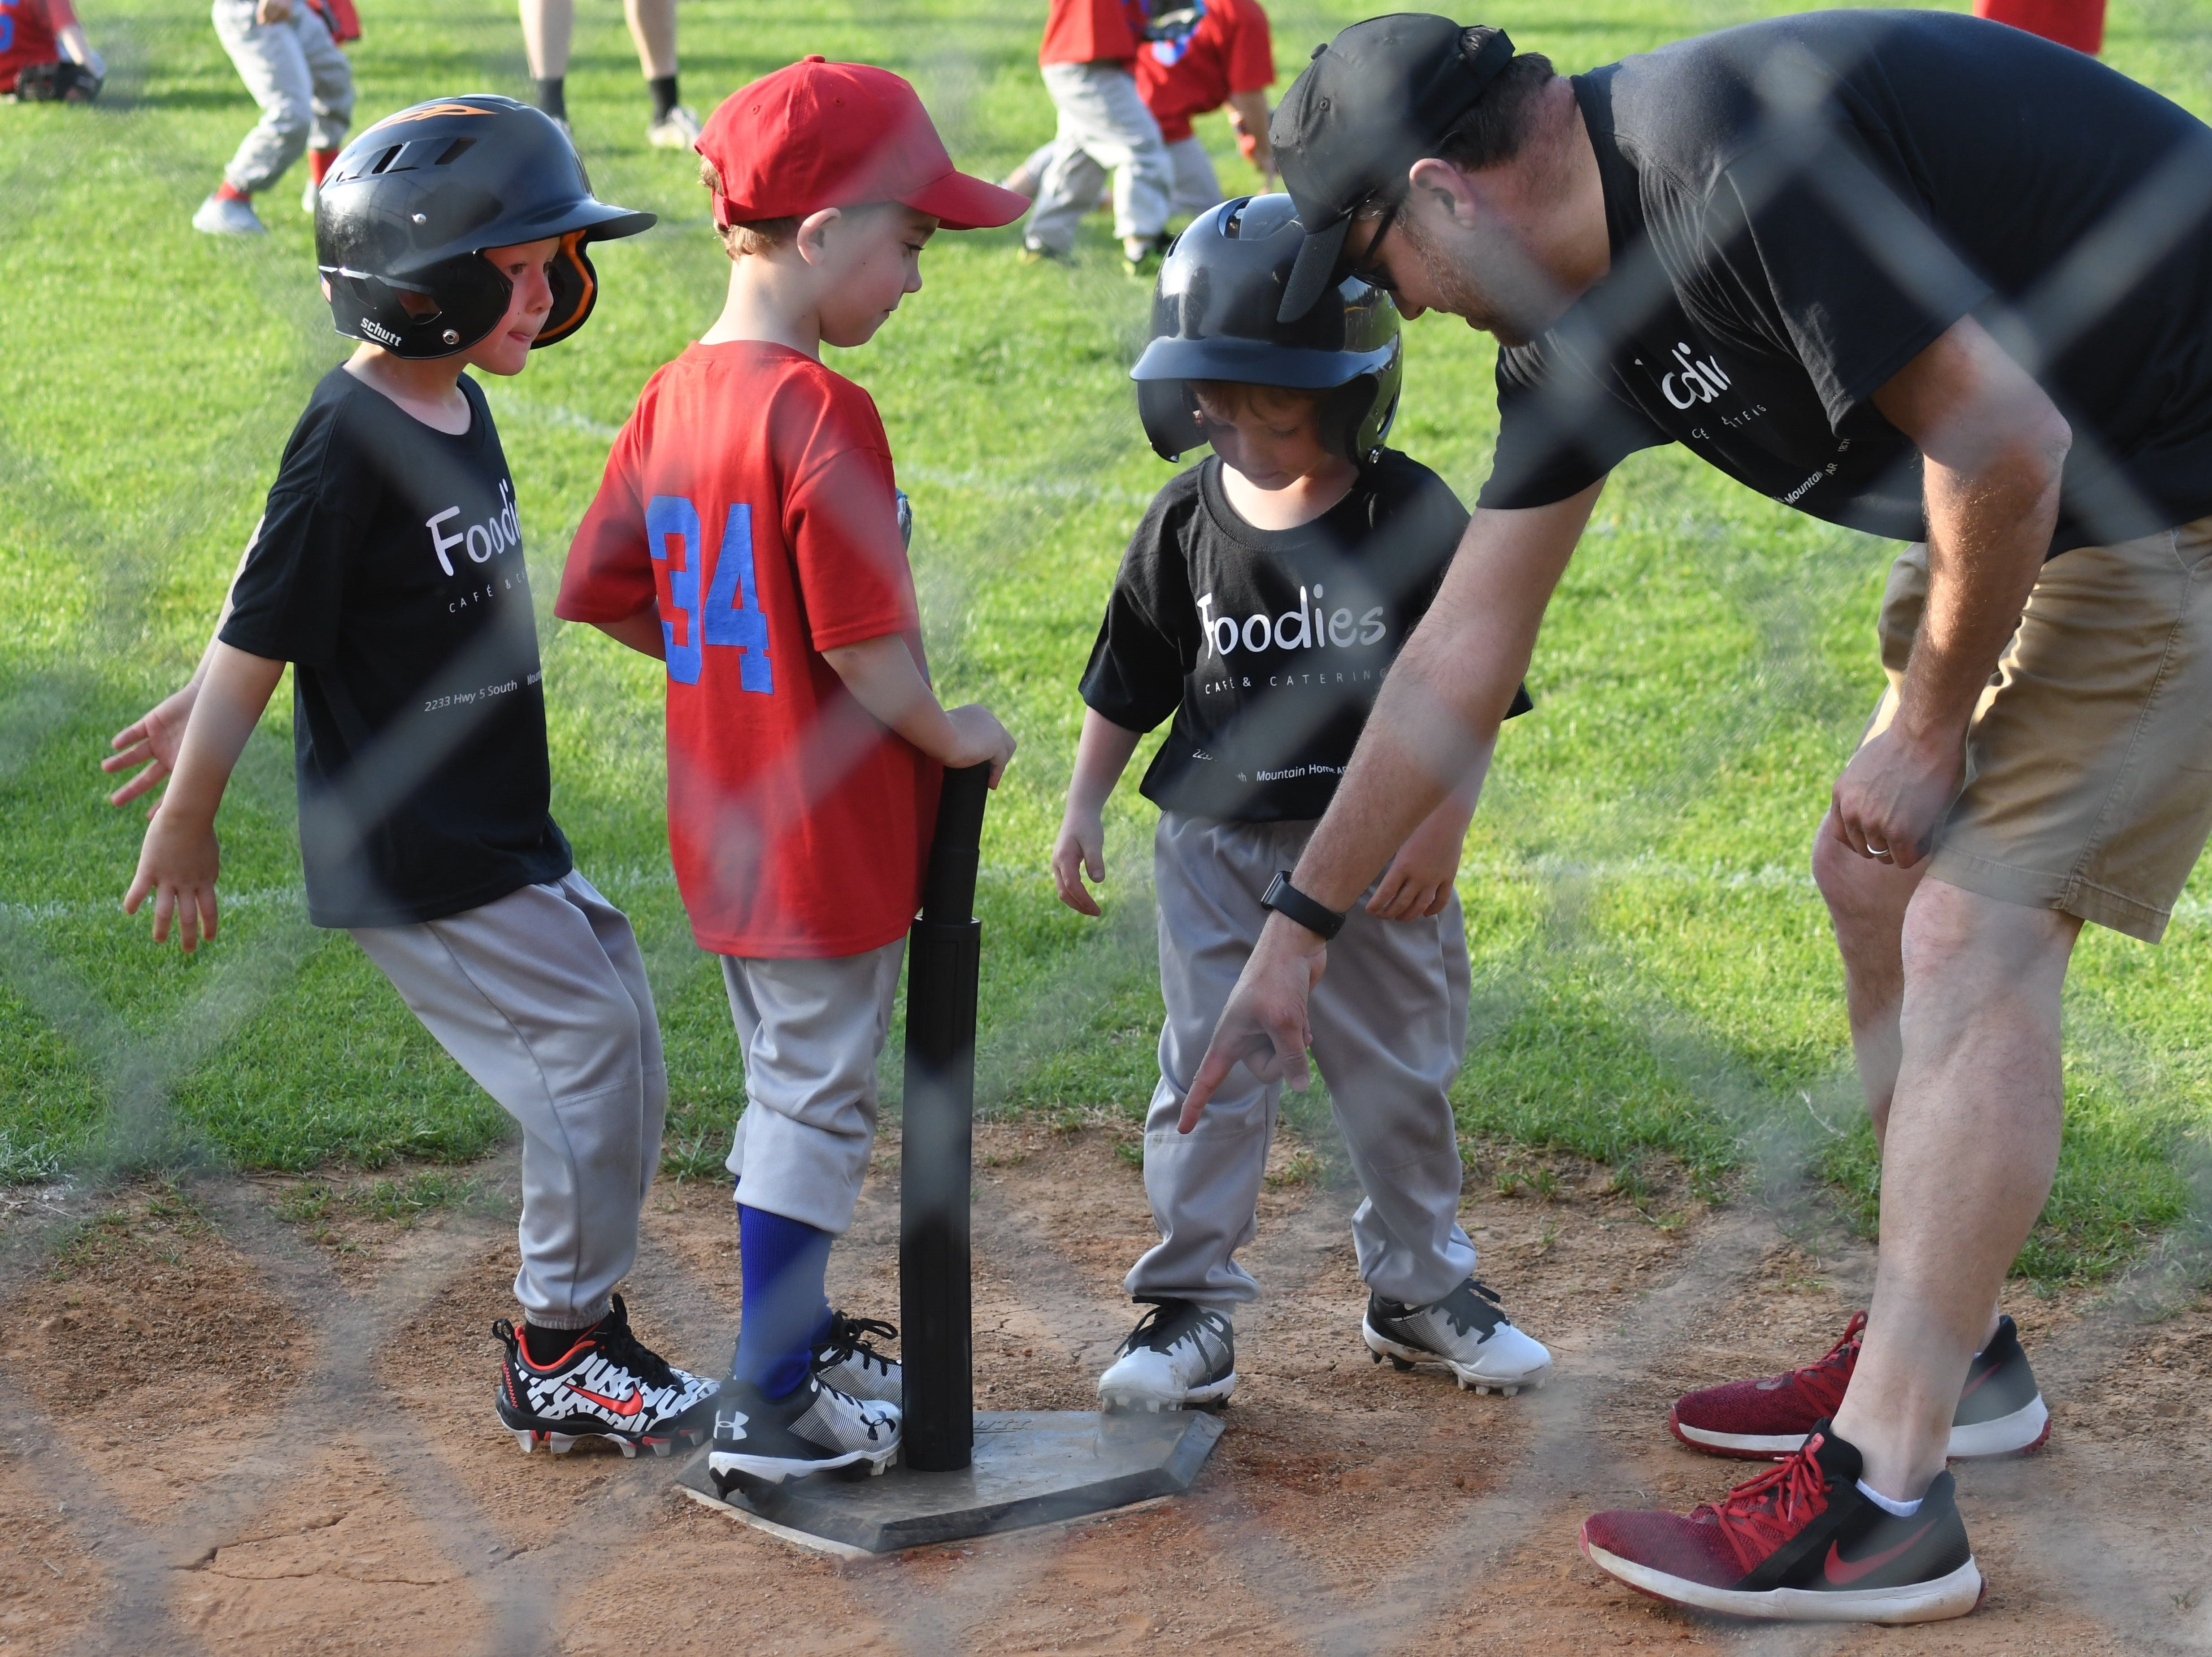 A coach for the Foodies team reminds his players to touch home plate during their game against the Baxter County Republicans on Tuesday at Sanders, Morgan & Clarke Field.